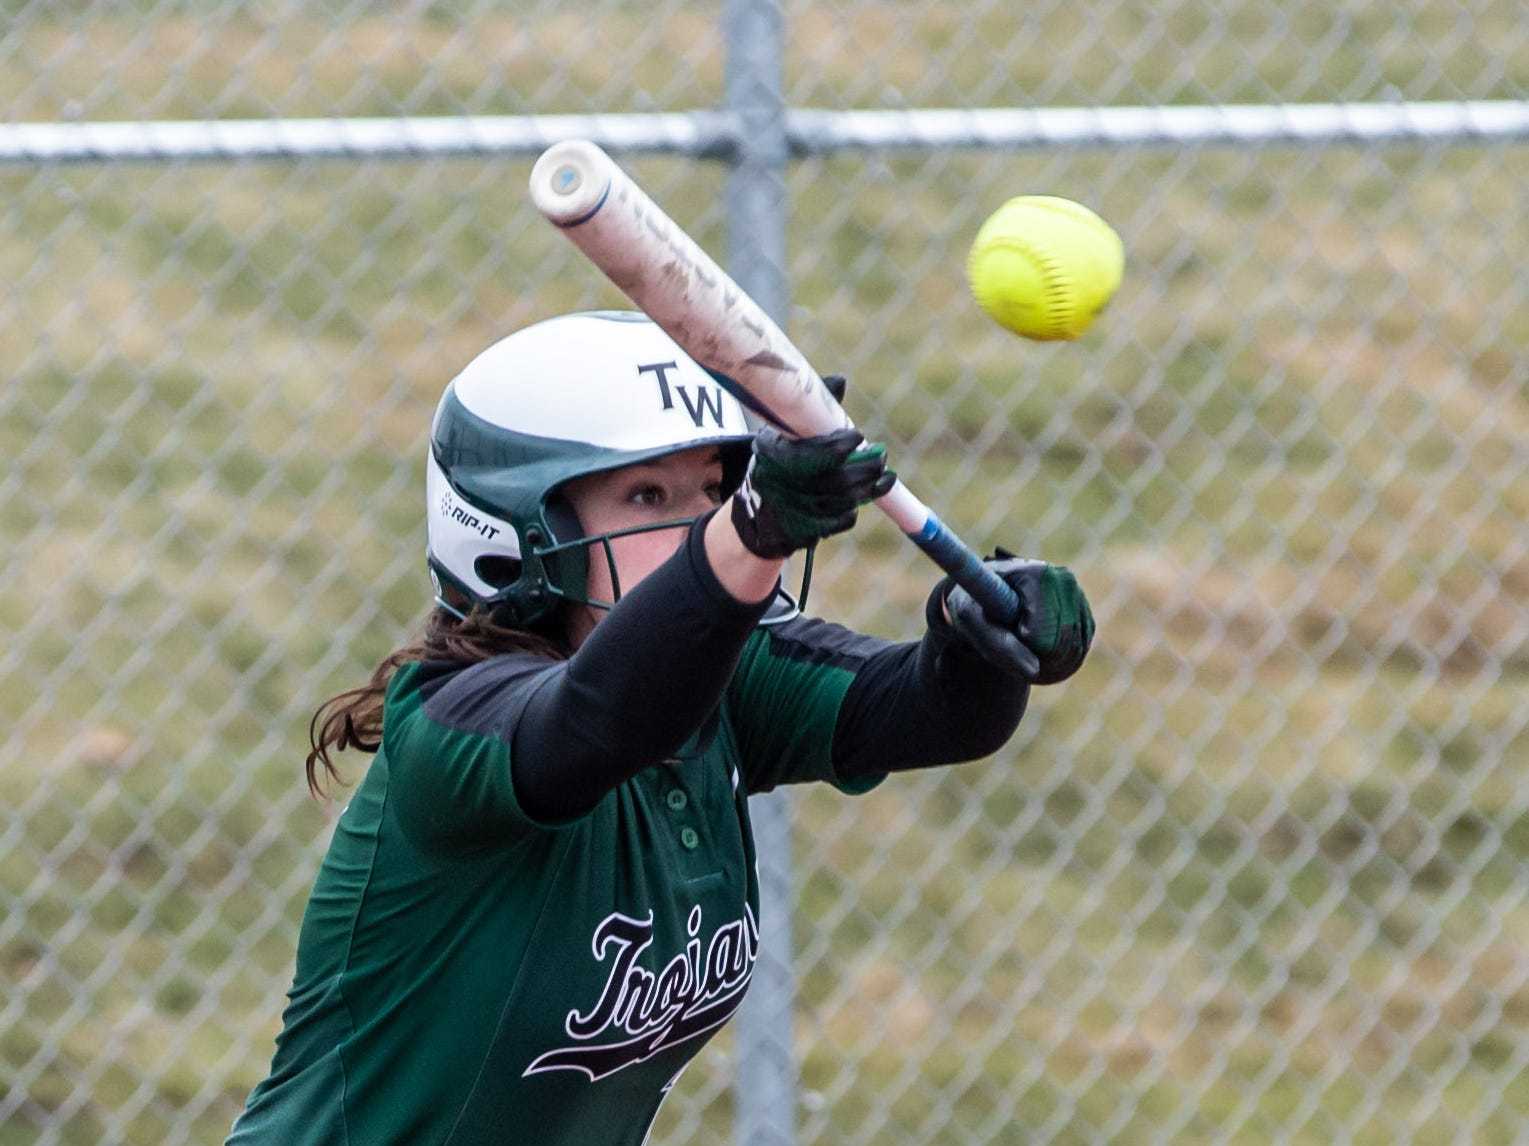 Wauwatosa West's Tess Helbig lays down a bunt during the game at home against DSHA on Wednesday, April 17, 2019.